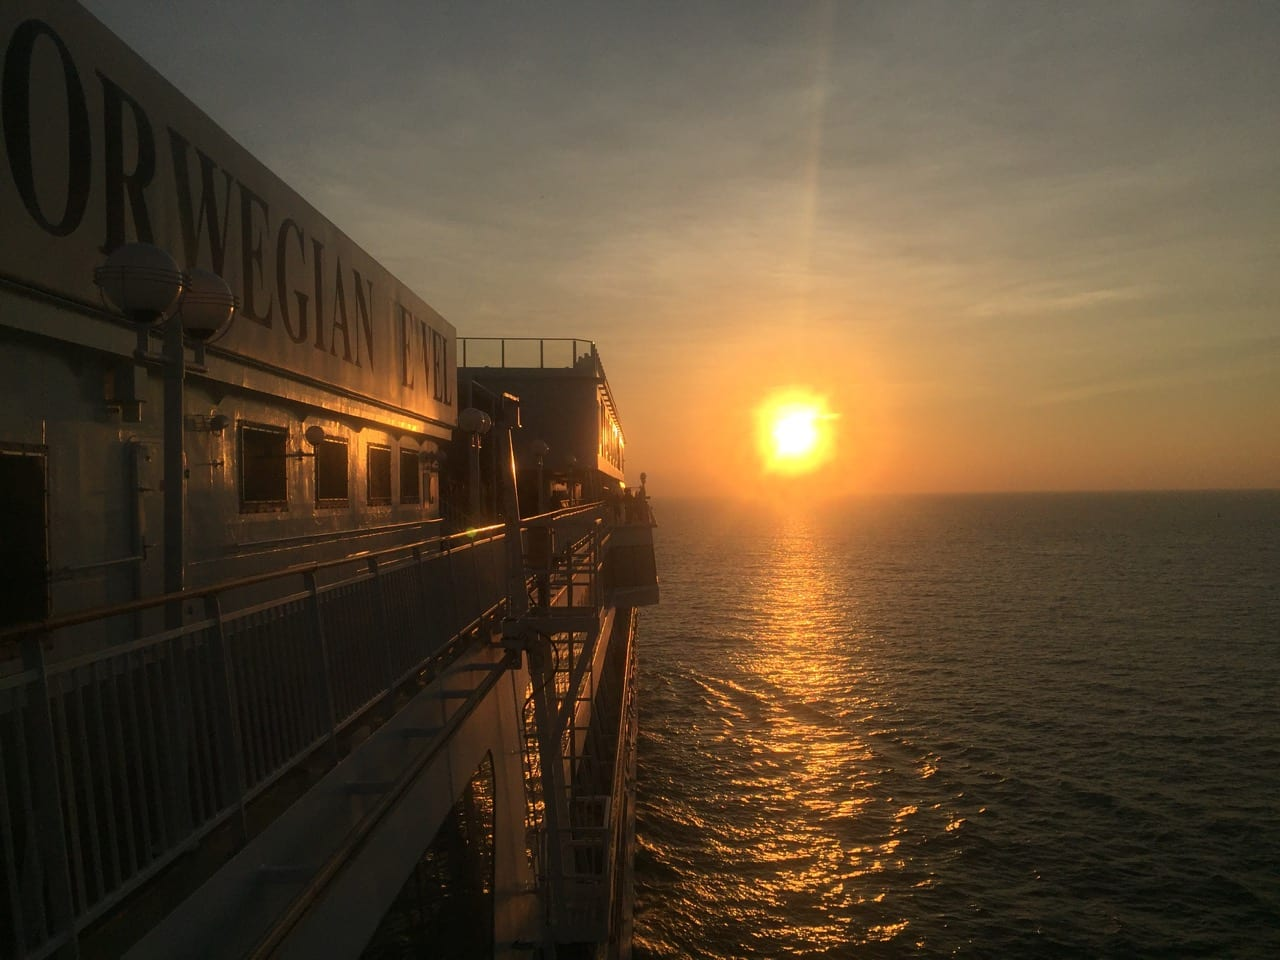 Sunset on Norwegian Jewel